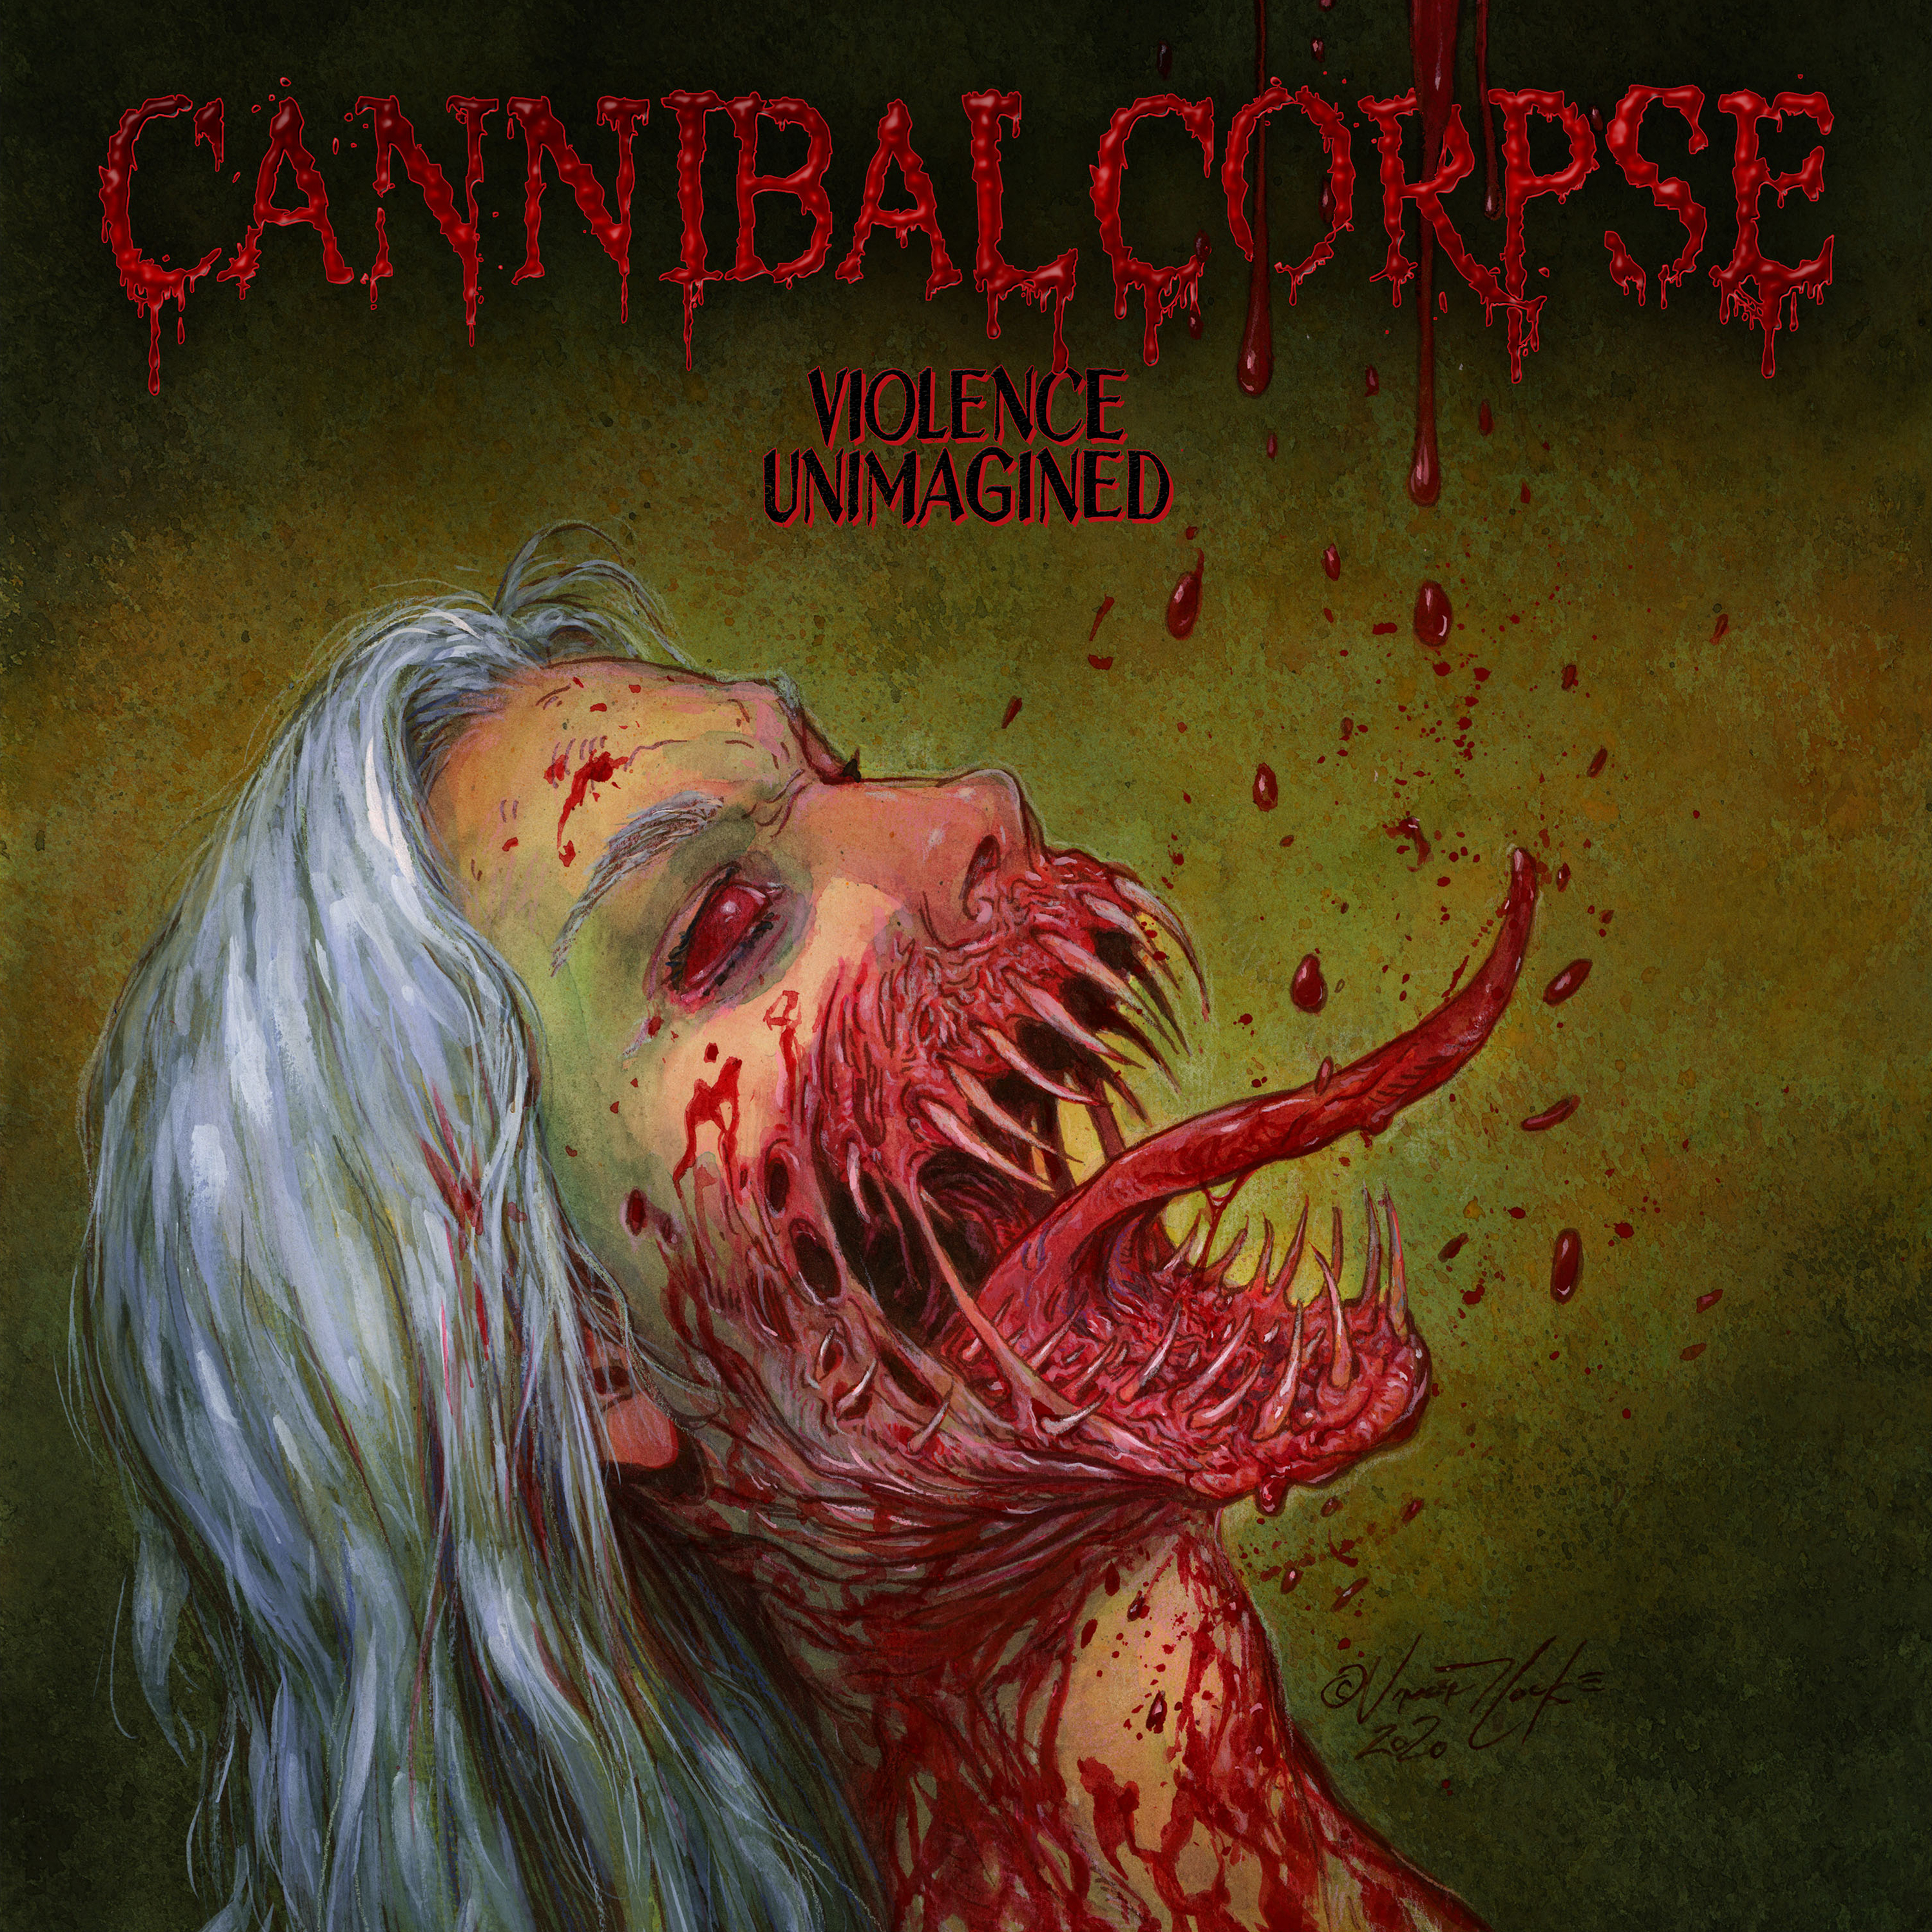 Cannibal Corpse – Violence Unimagined – Album Review